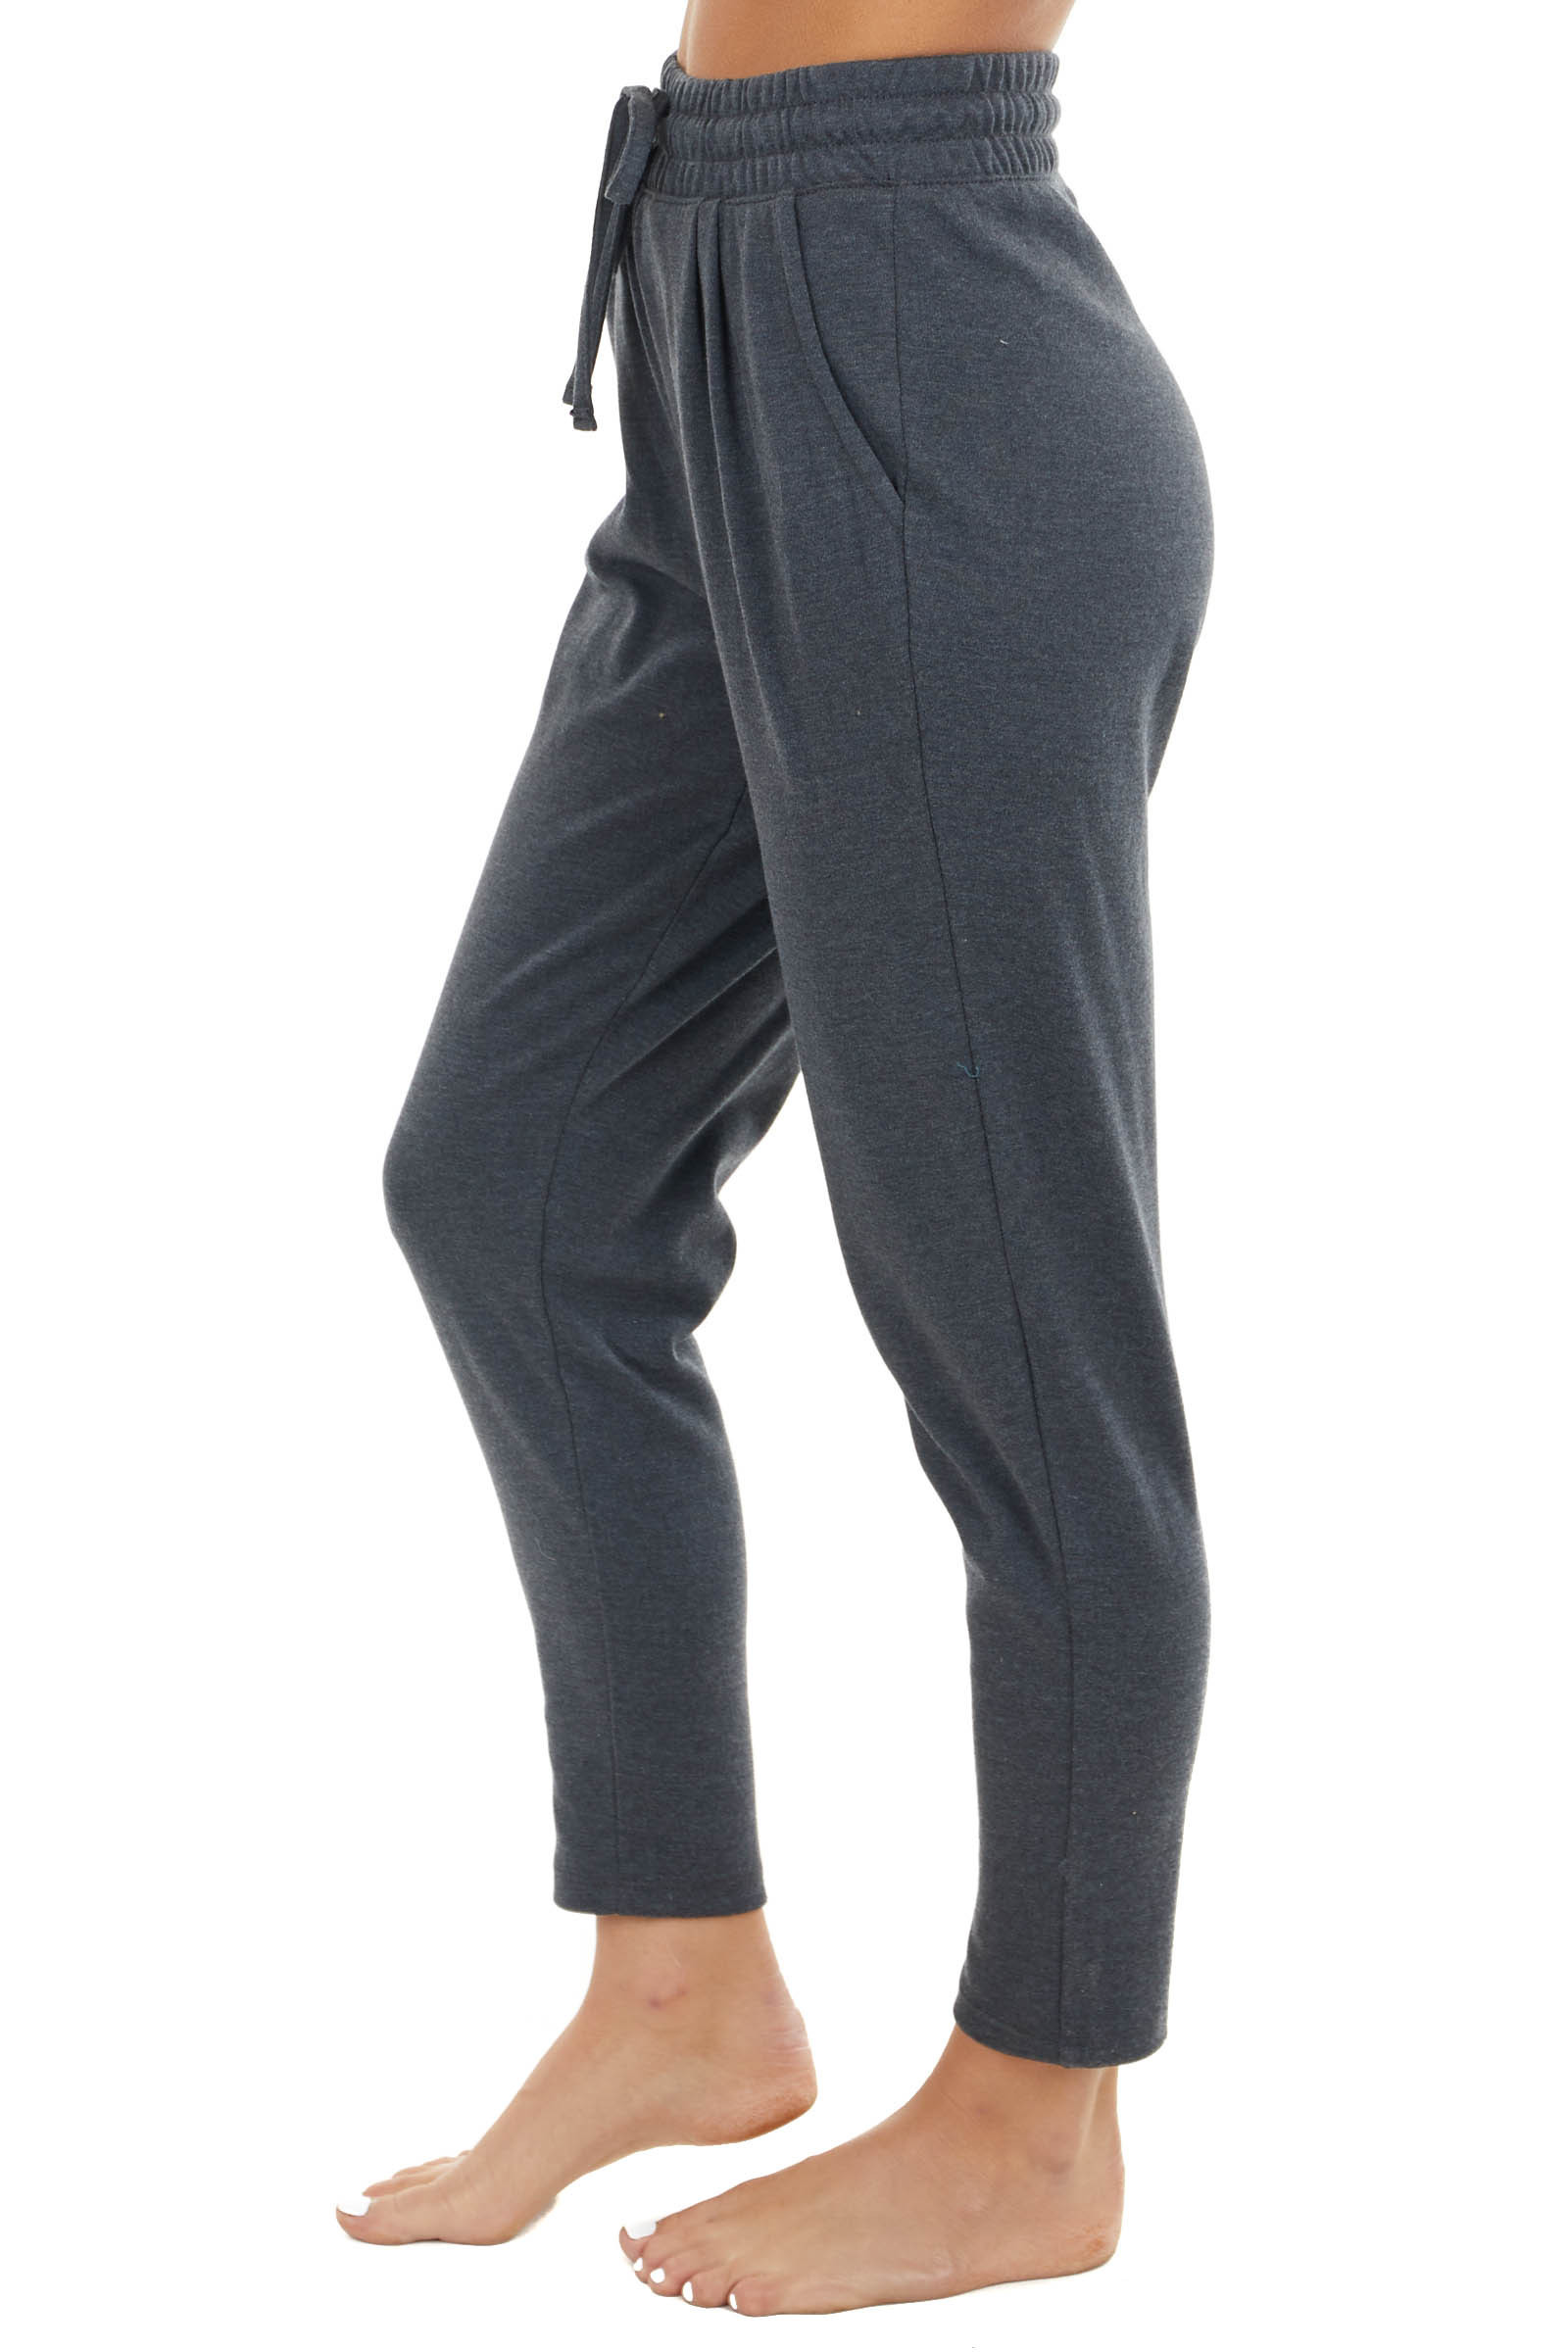 Charcoal Knit Sweatpants with Drawstring Waist and Pockets